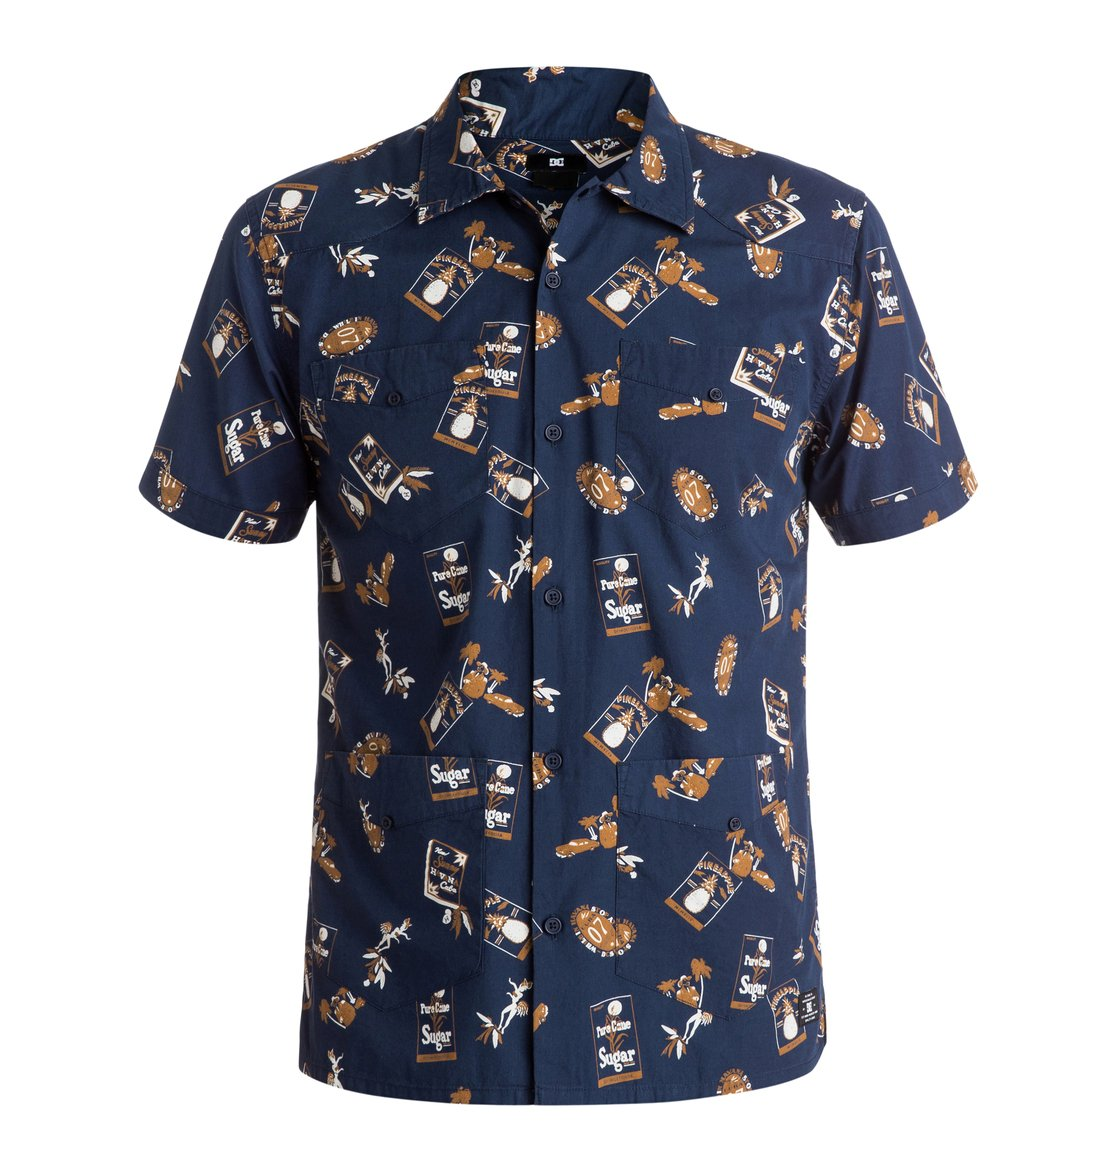 Guayabera Print - Short Sleeve Shirt Dcshoes